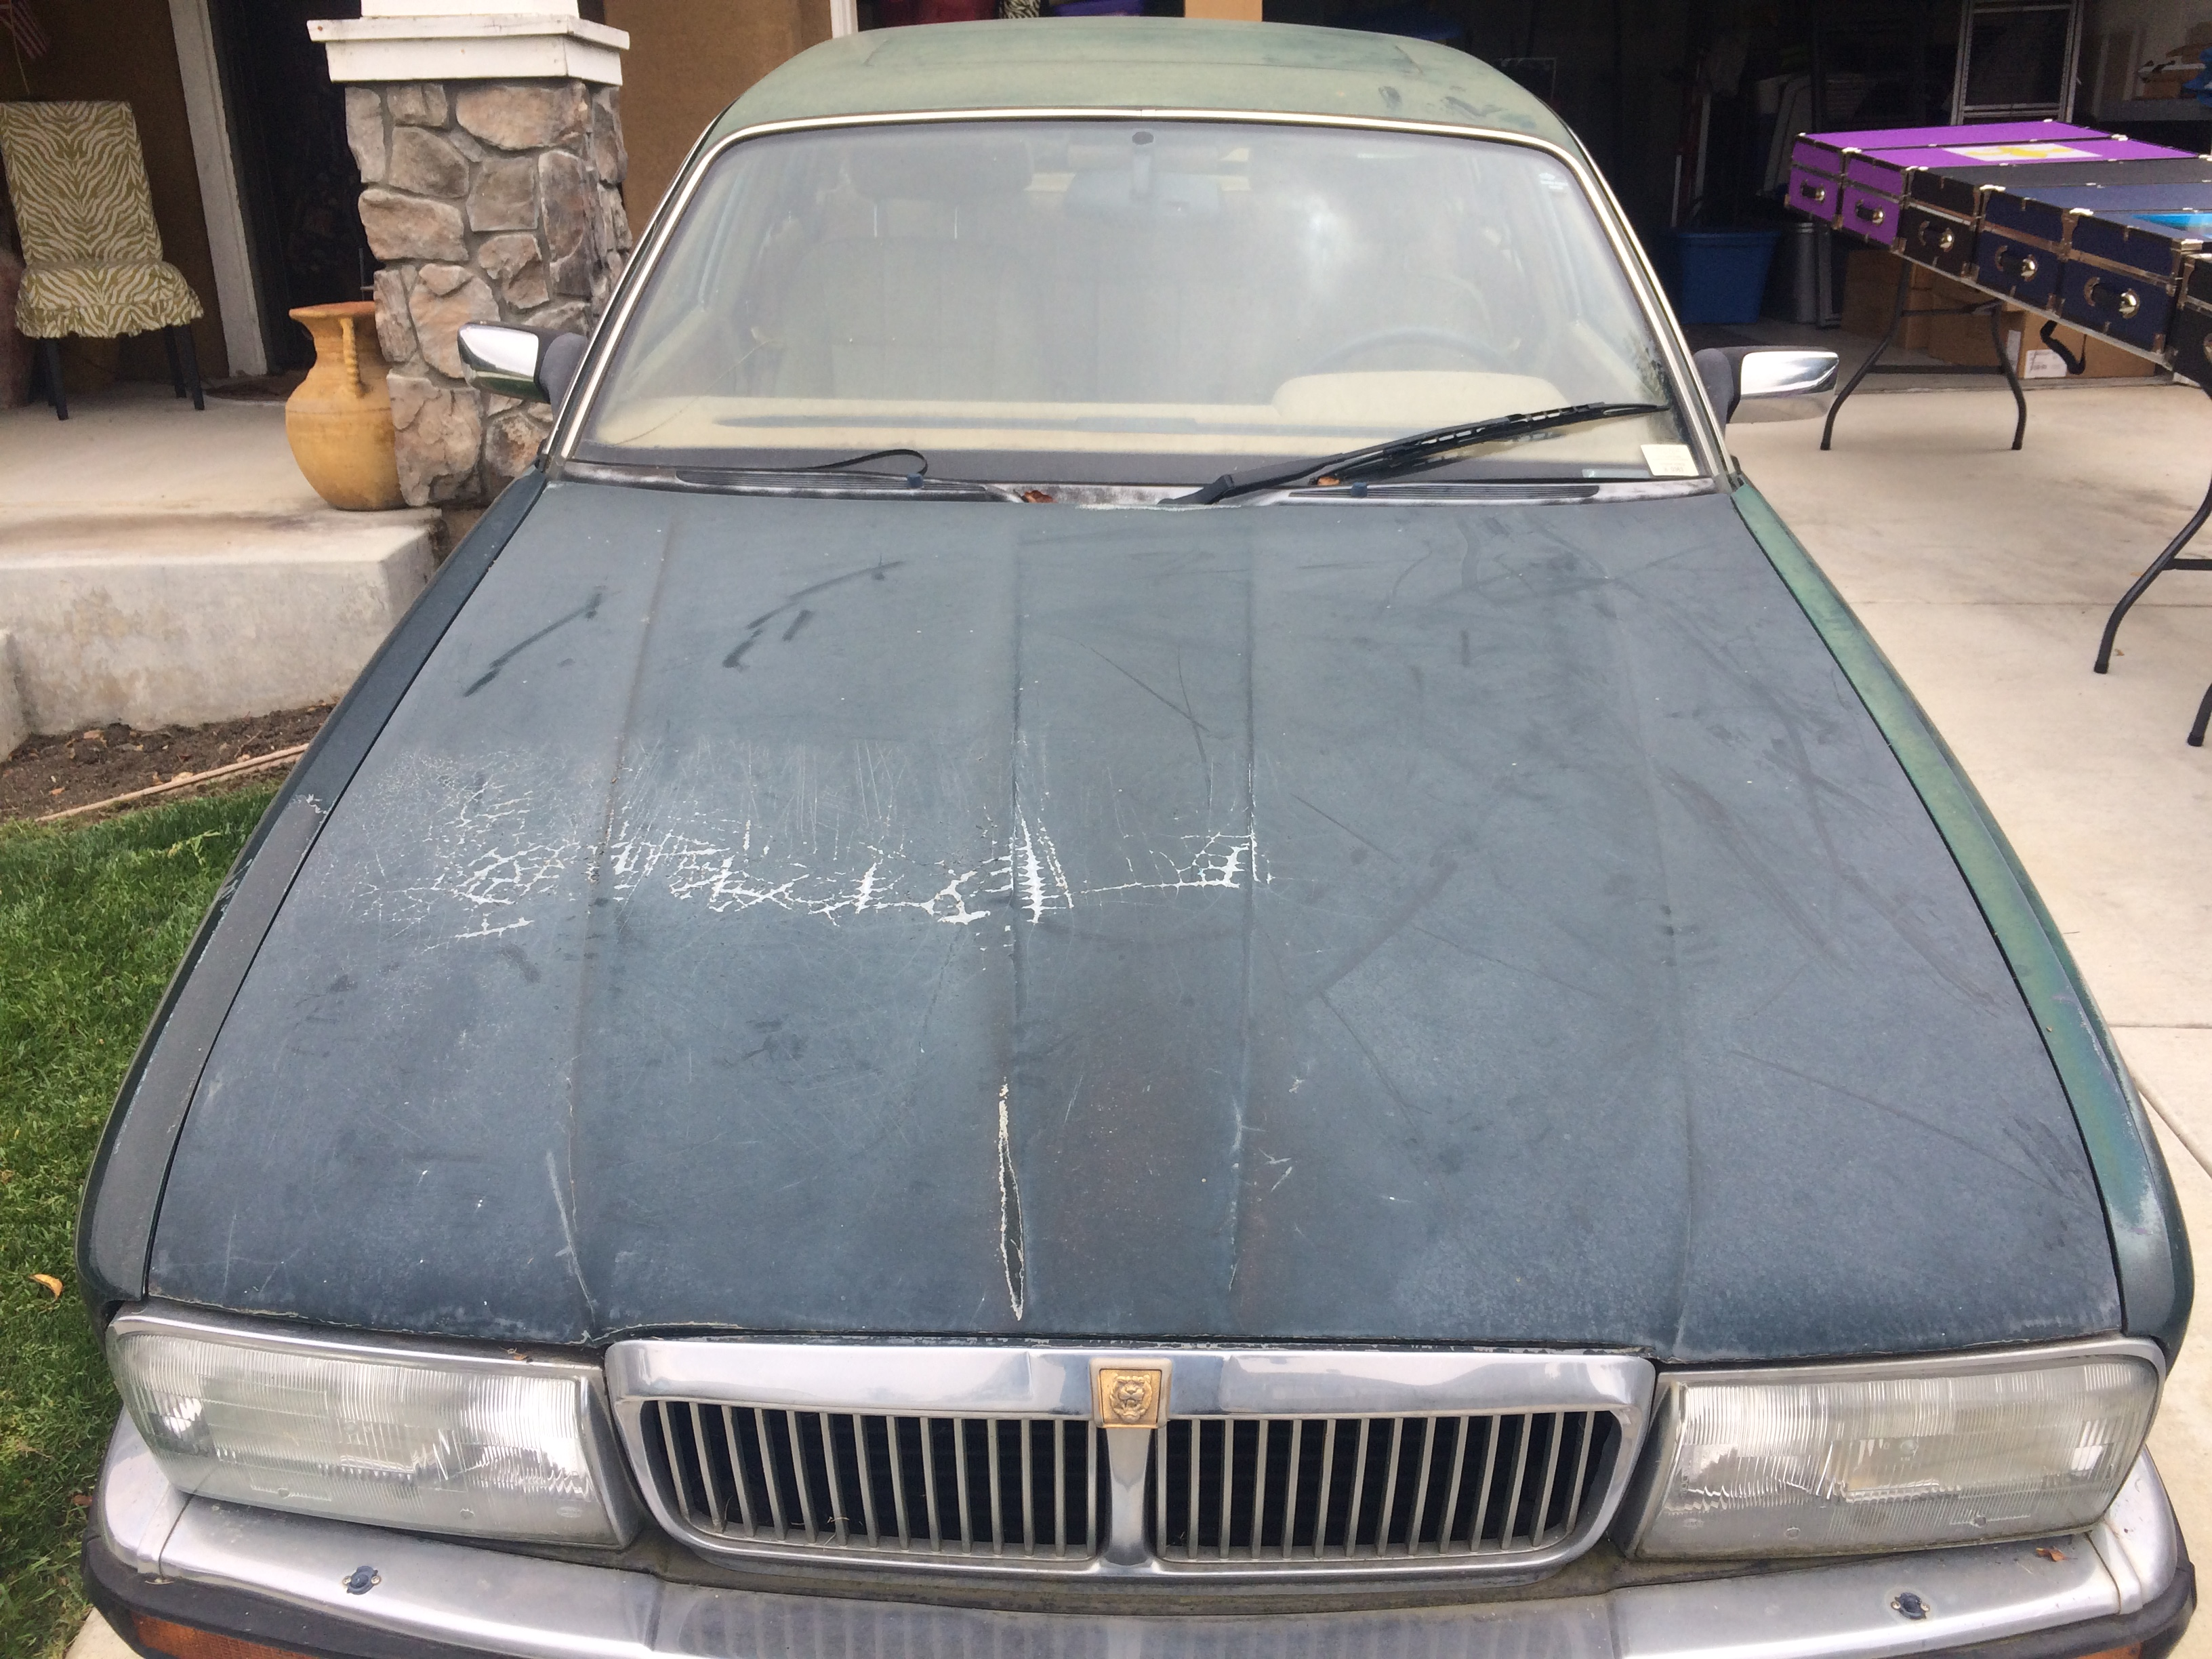 94 Jaguar needs work & smog